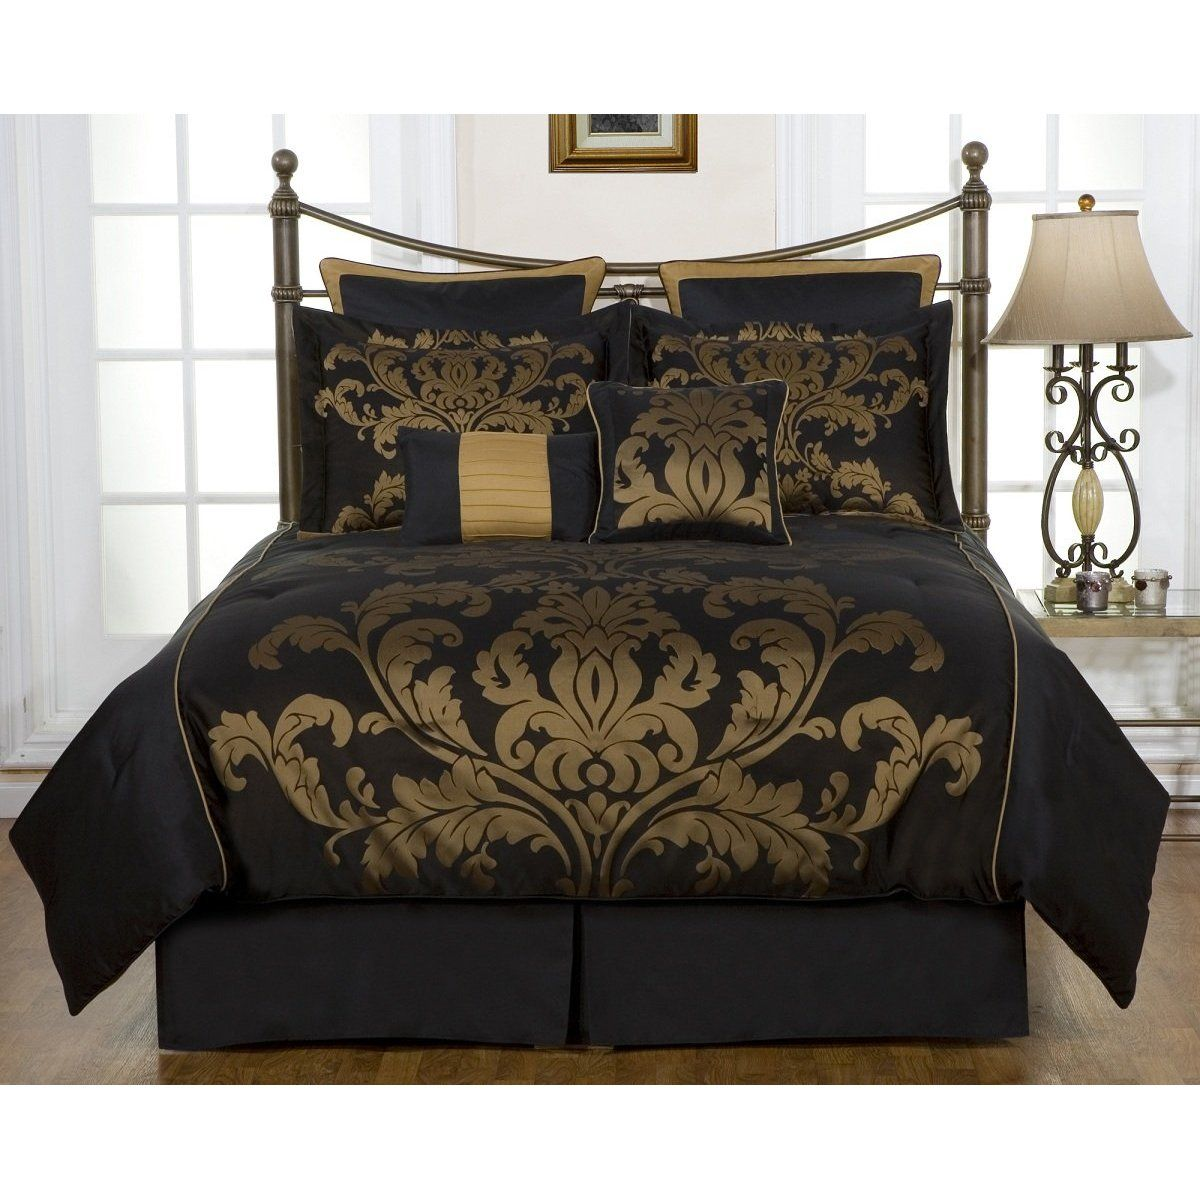 Black and gold bedroom - Bust Of Black And Gold Bedding Sets For Adding Luxurious Bedroom Decors